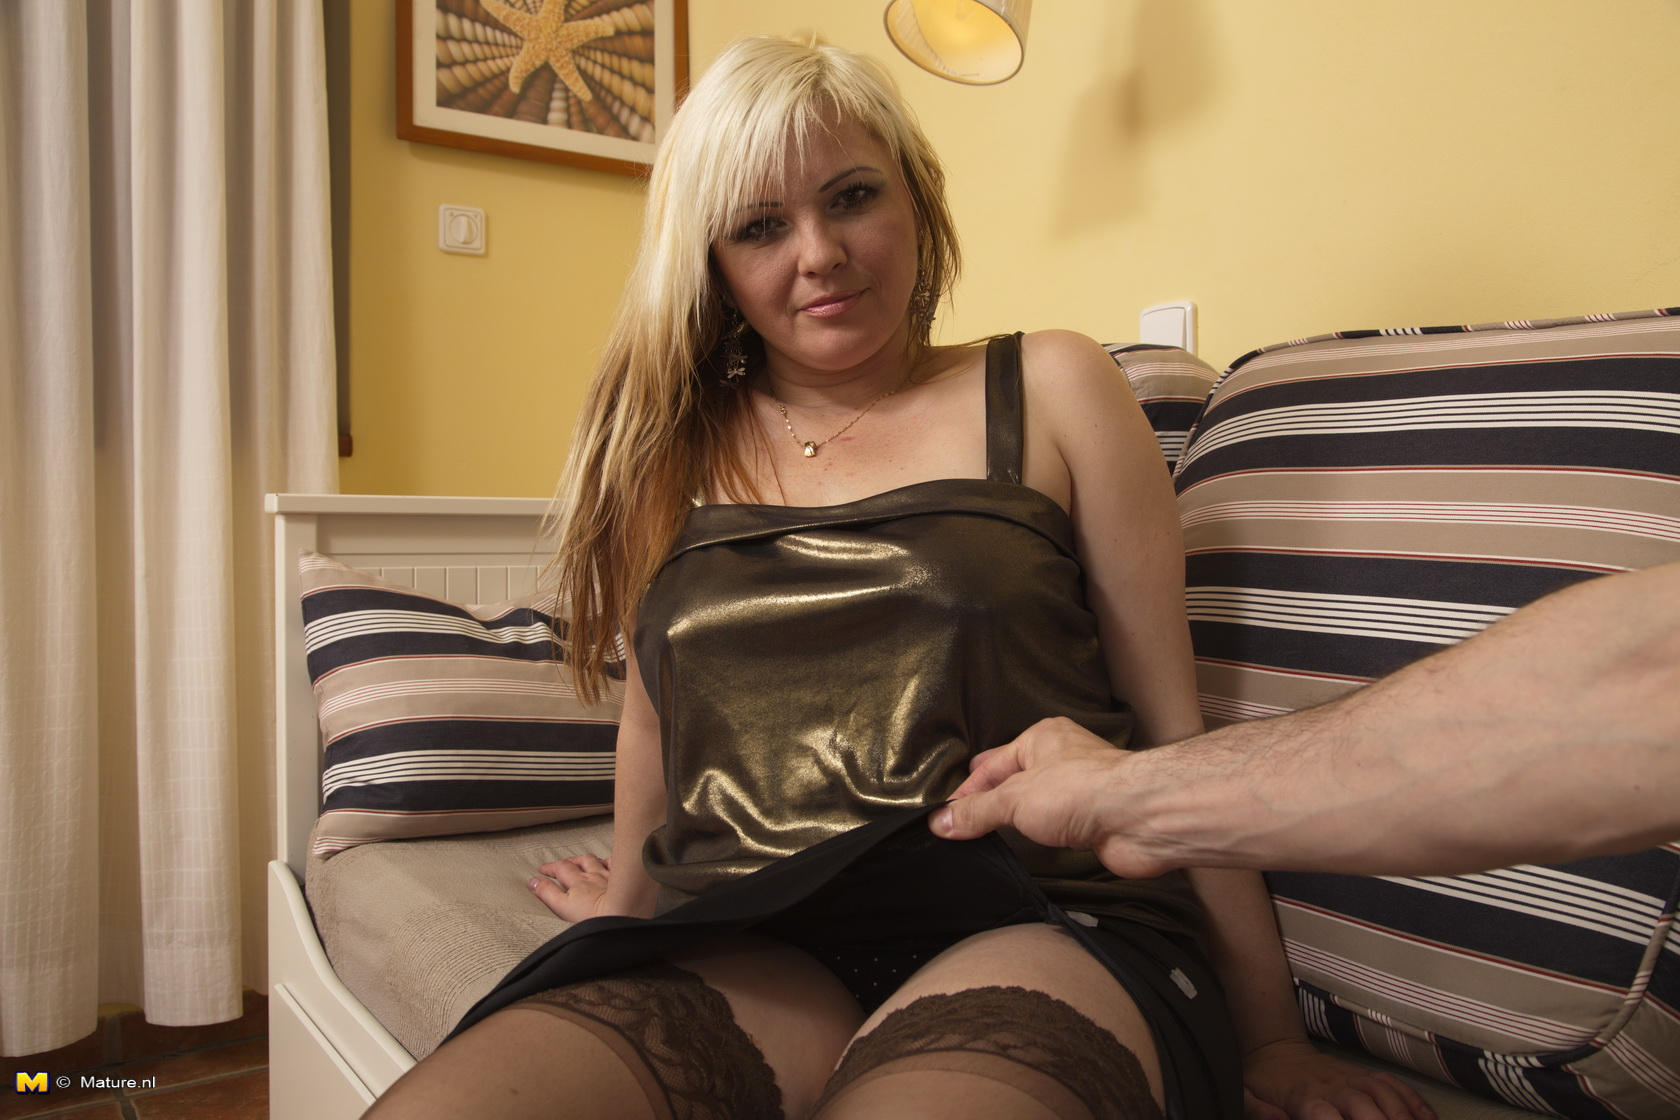 Ultra-kinky housewife gets it in POINT OF VIEW fashion